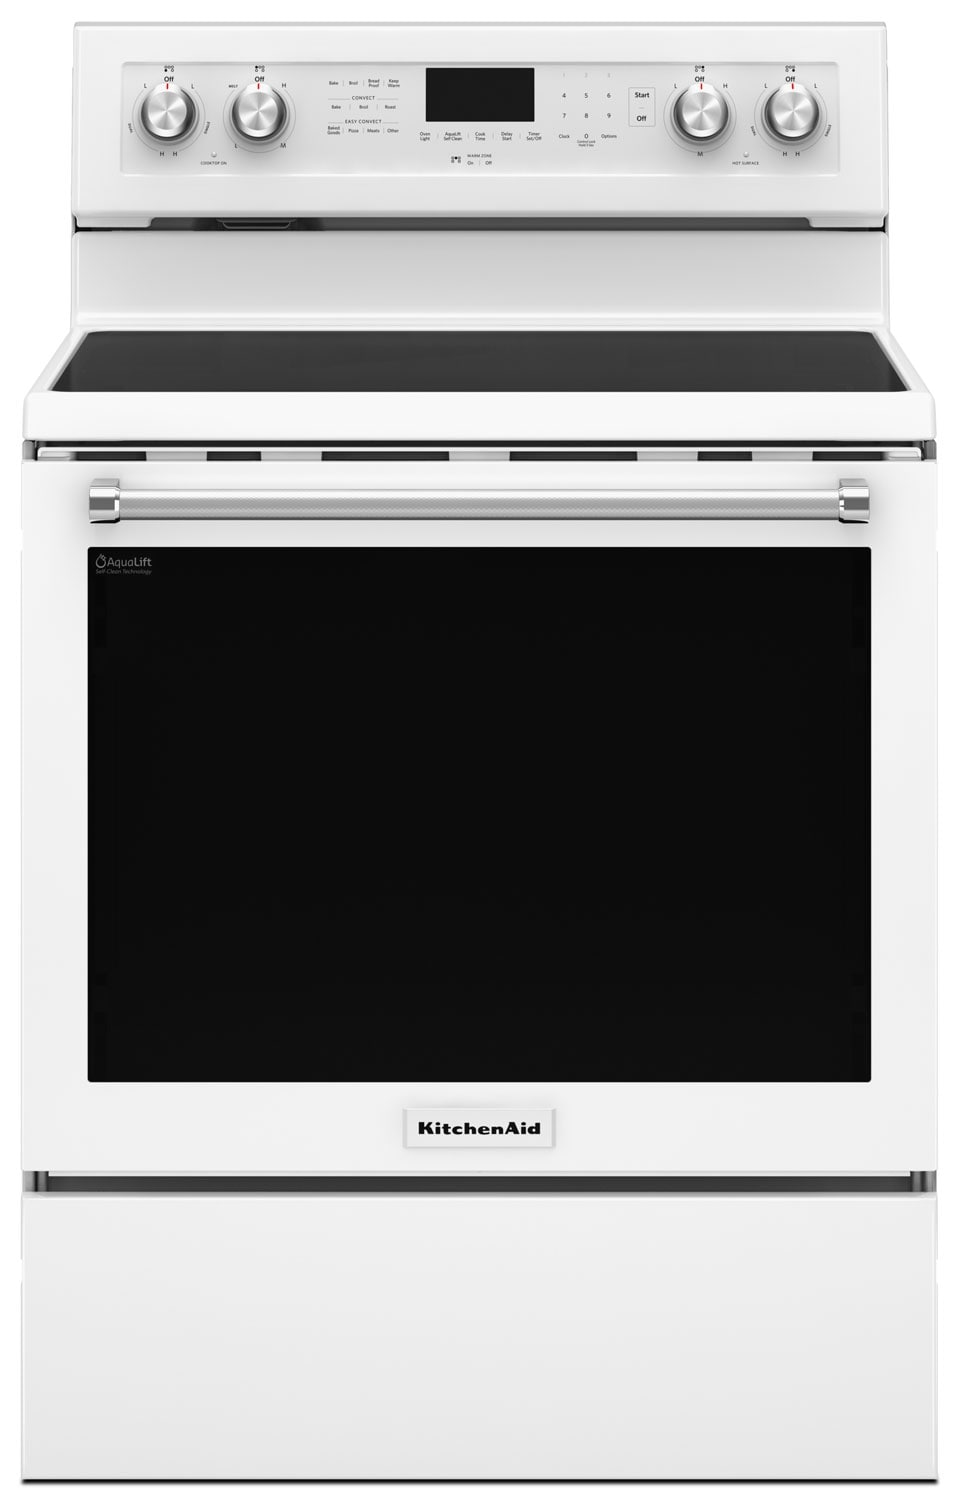 Cooking Products - KitchenAid 6.4 Cu Ft. Five-Element Electric Convection Range - White